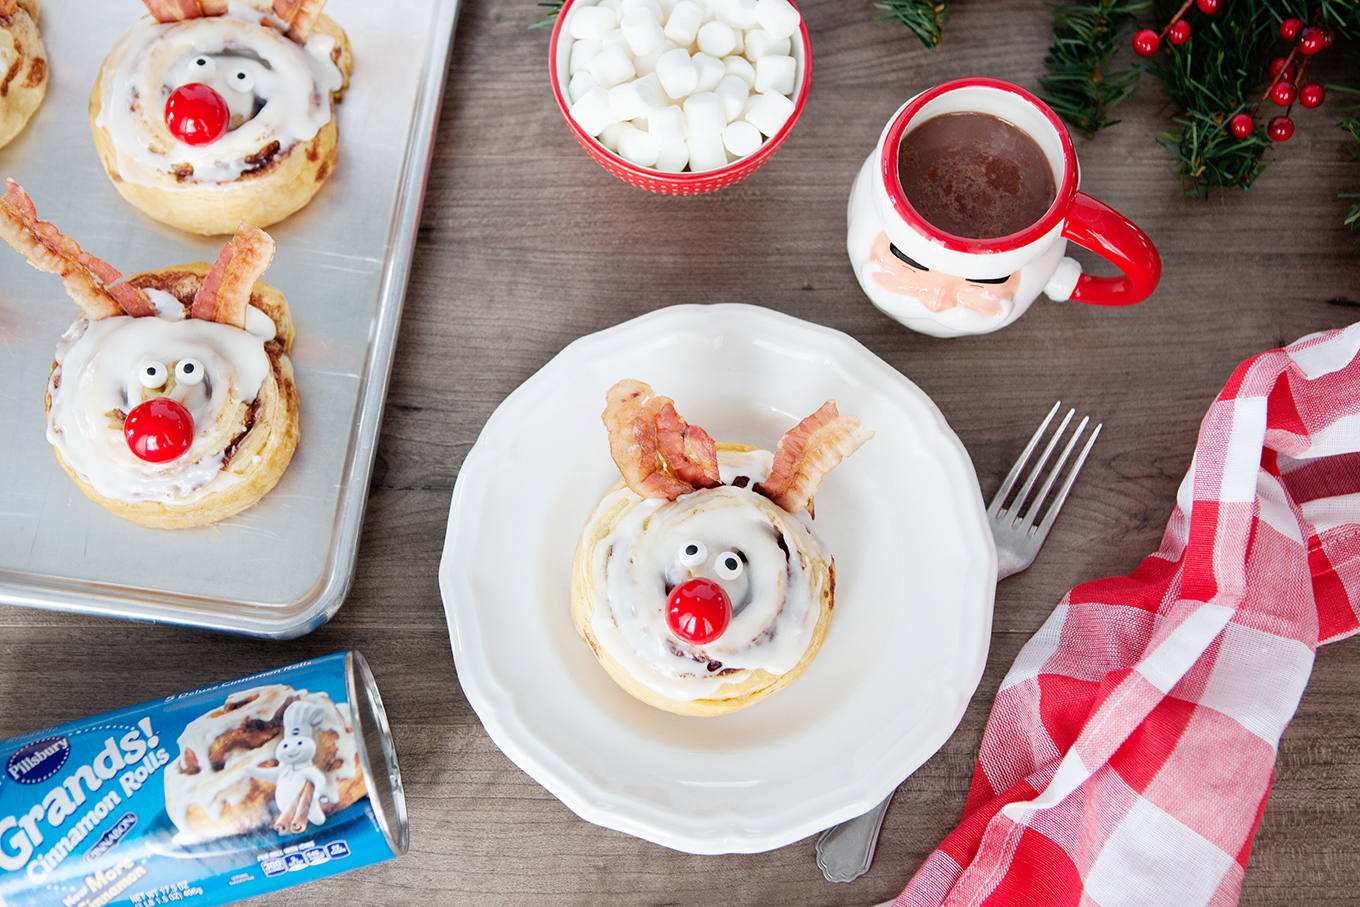 These Rudolph the Red-Nosed Reindeer Cinnamon Rolls will help make the holidays a bit more magical with minimal effort required!